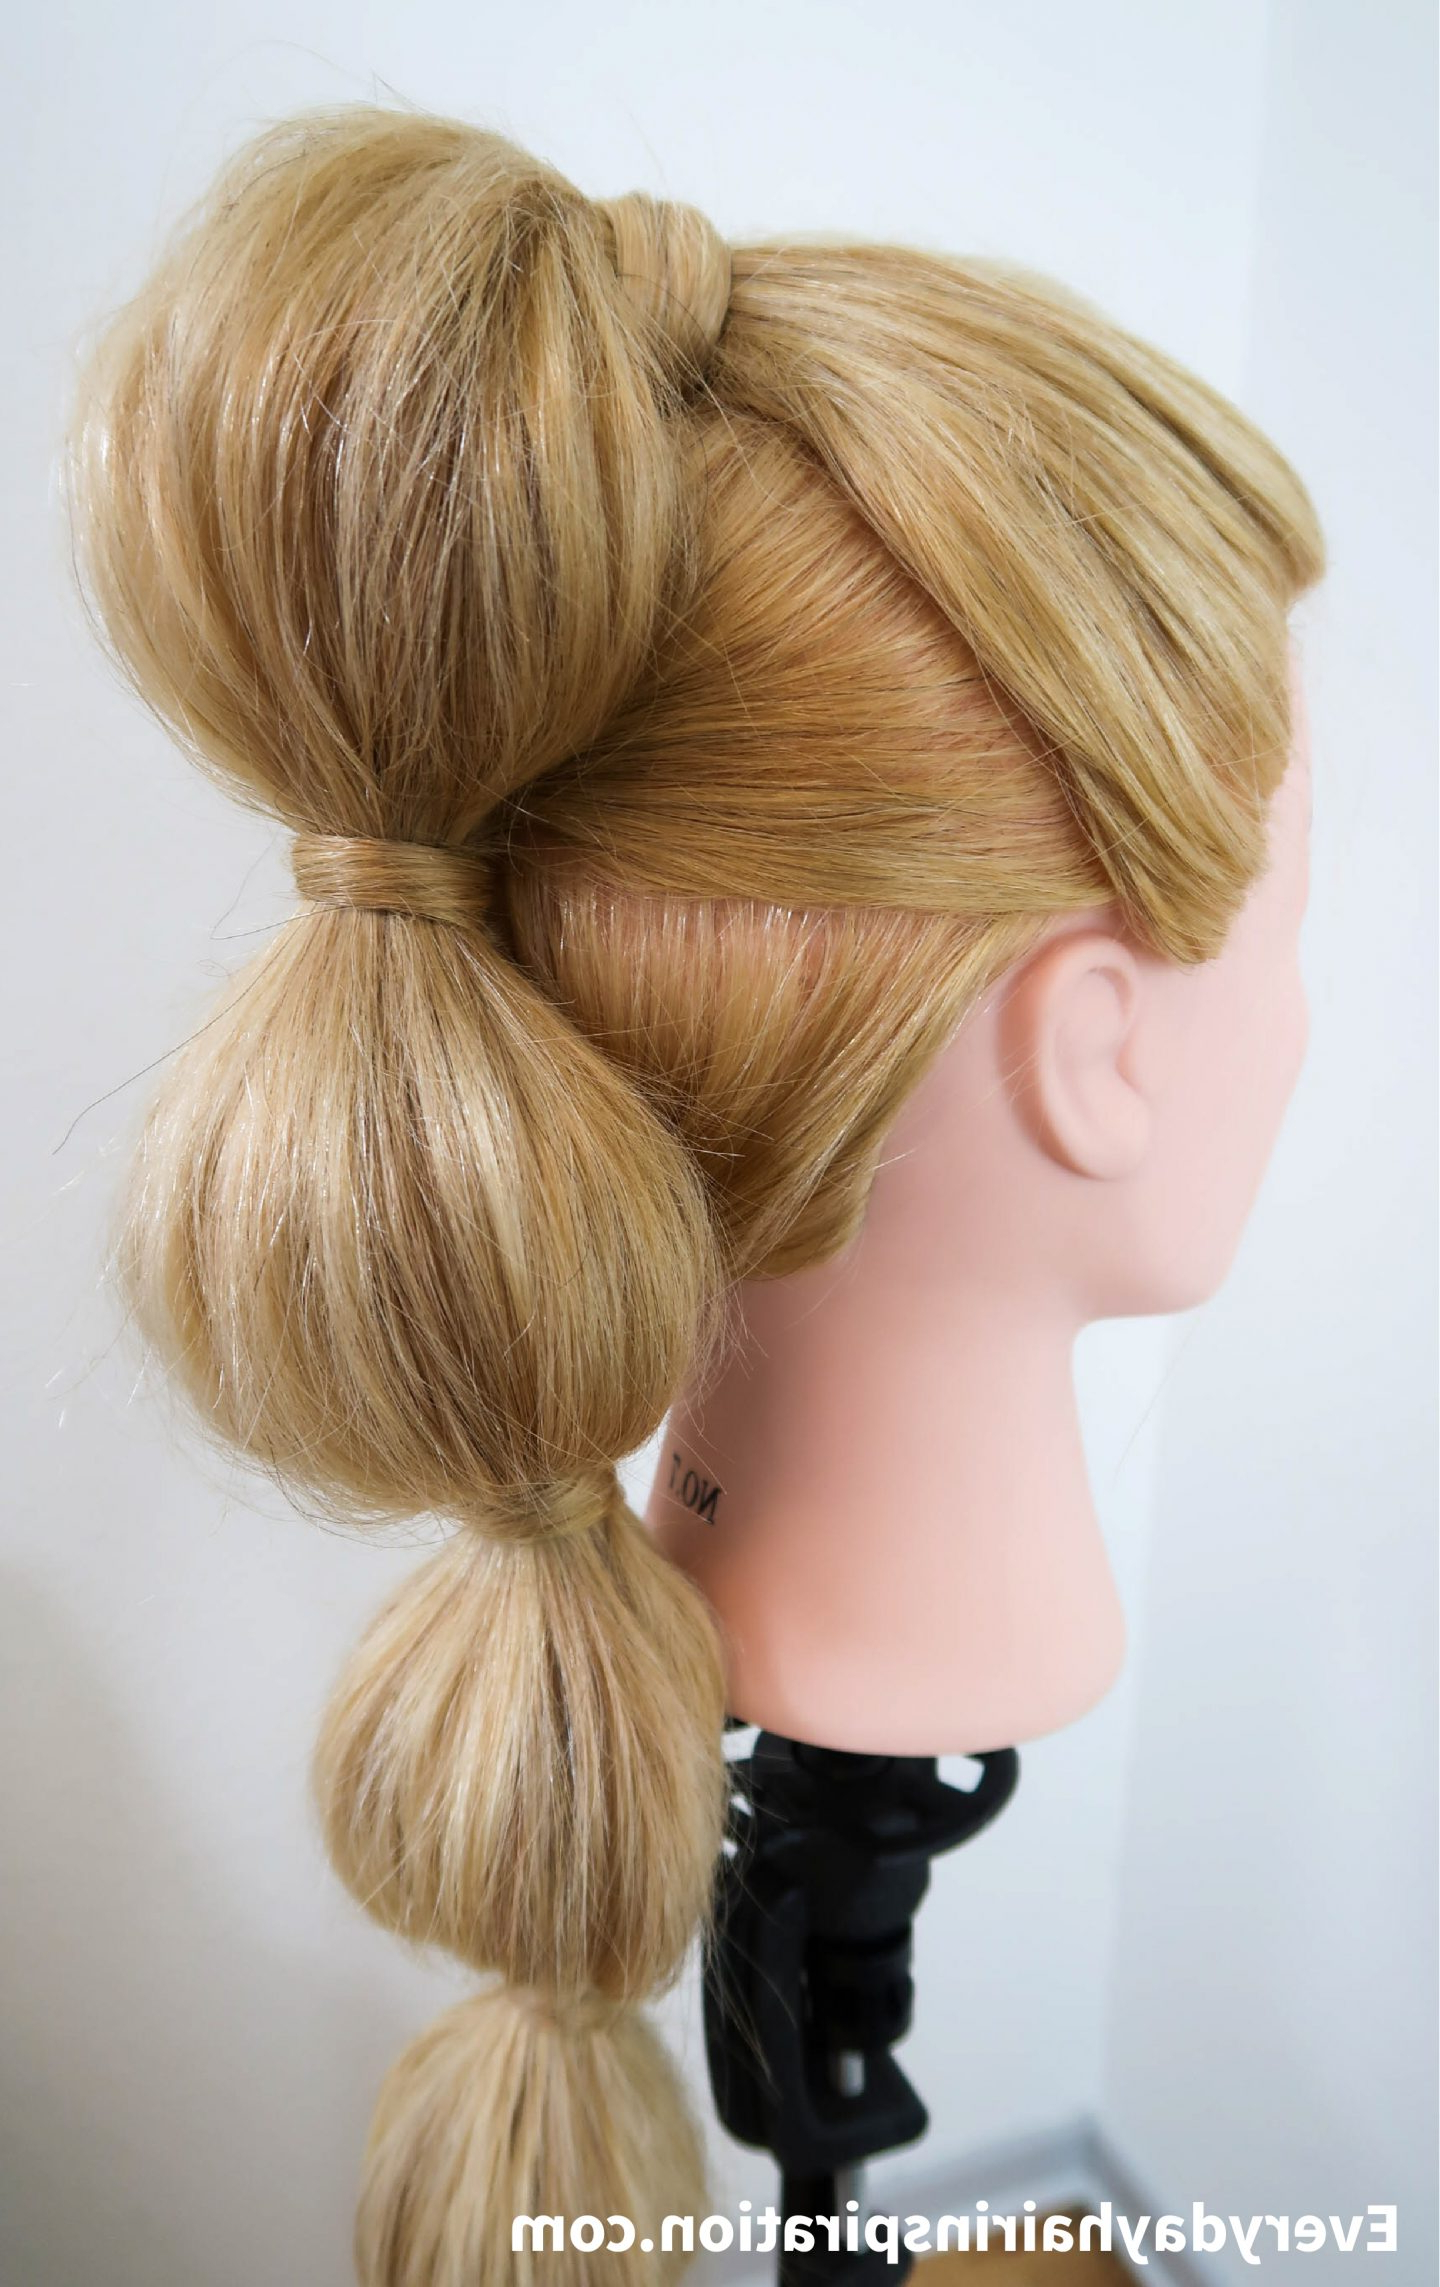 Bubble Ponytail Stepstep – Everyday Hair Inspiration Intended For Favorite Bubble Braid Updo Hairstyles (View 6 of 20)